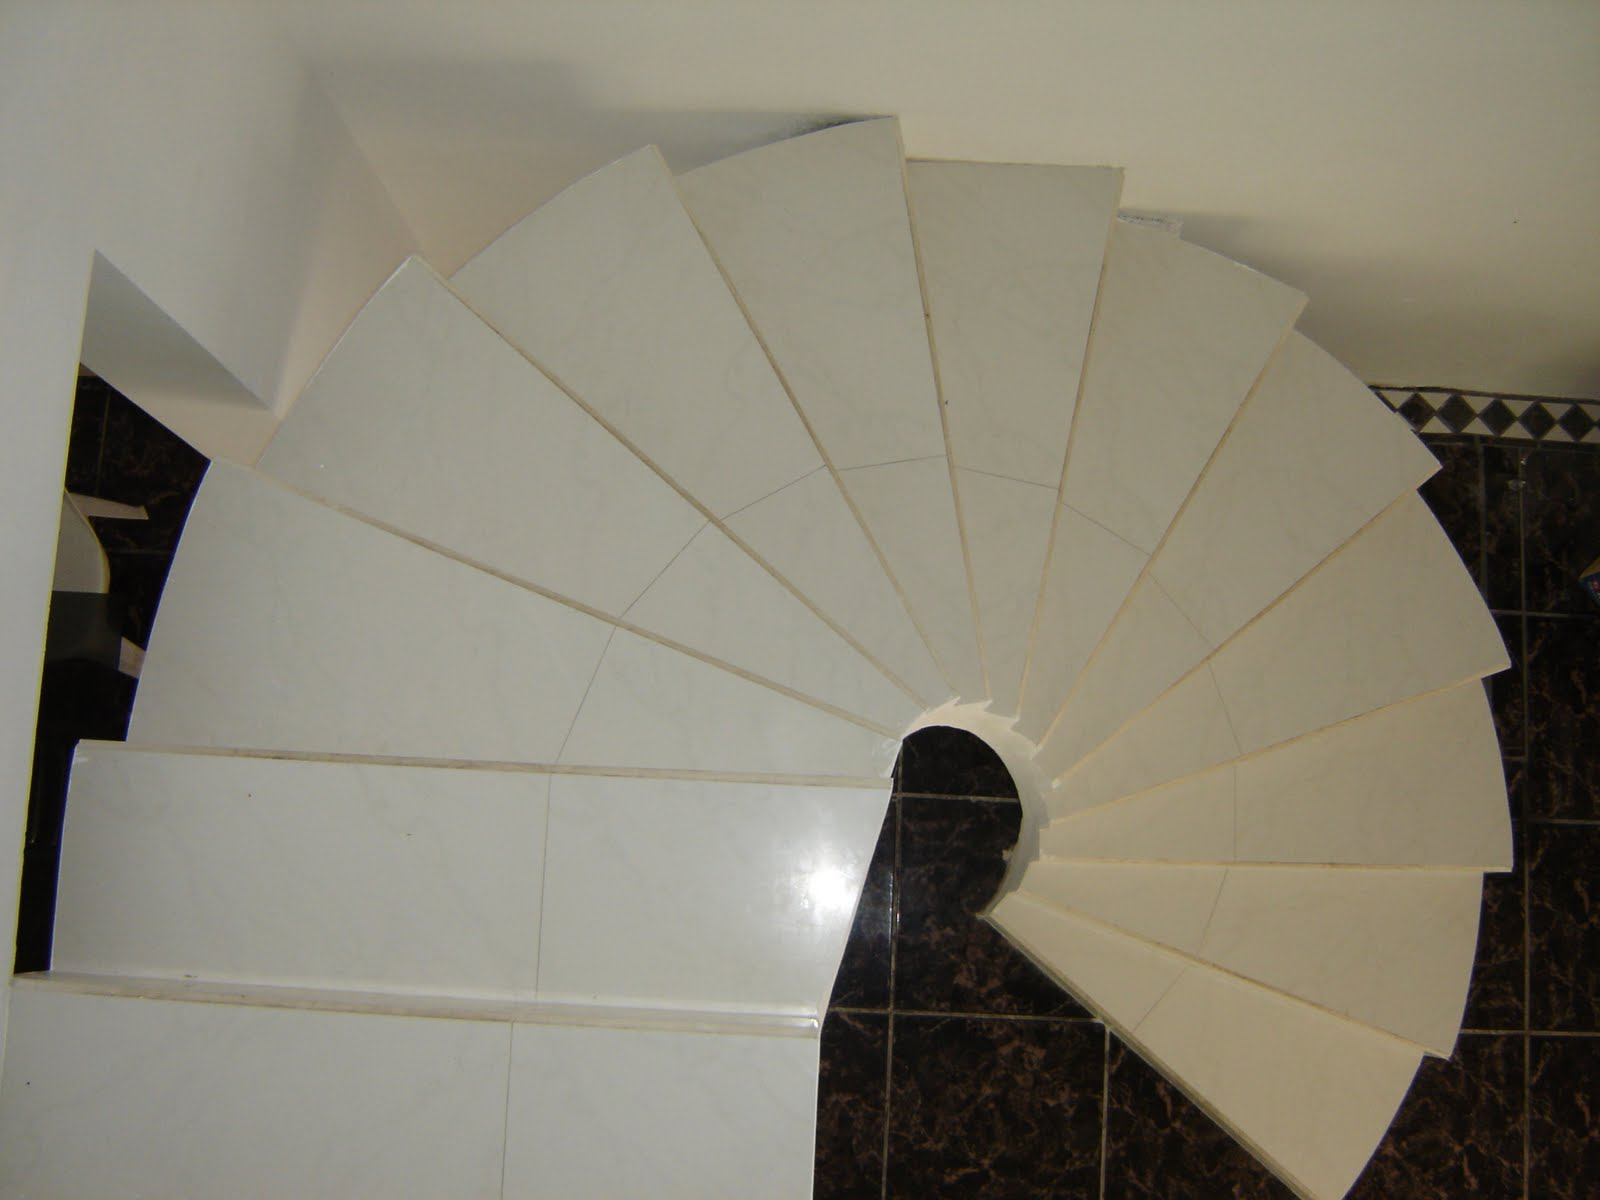 Remodelando tepic escalera con piso rectificado for Escalera caracol 2 pisos